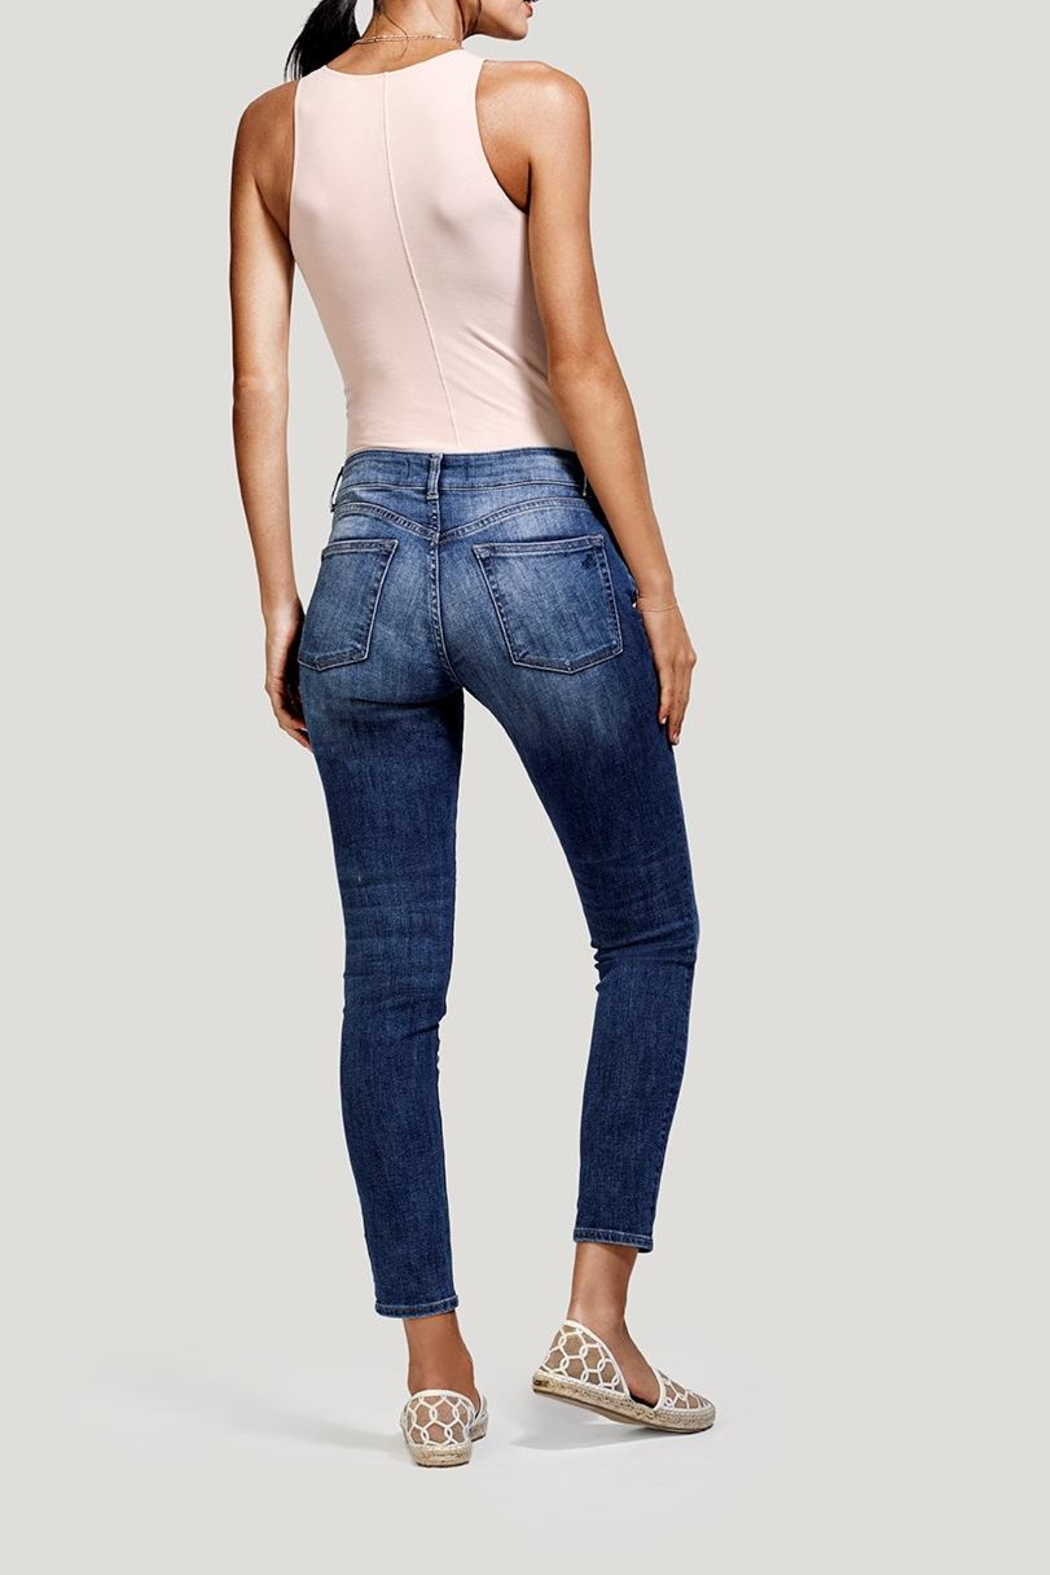 DL1961 Margaux Mini Jeans - Front Full Image